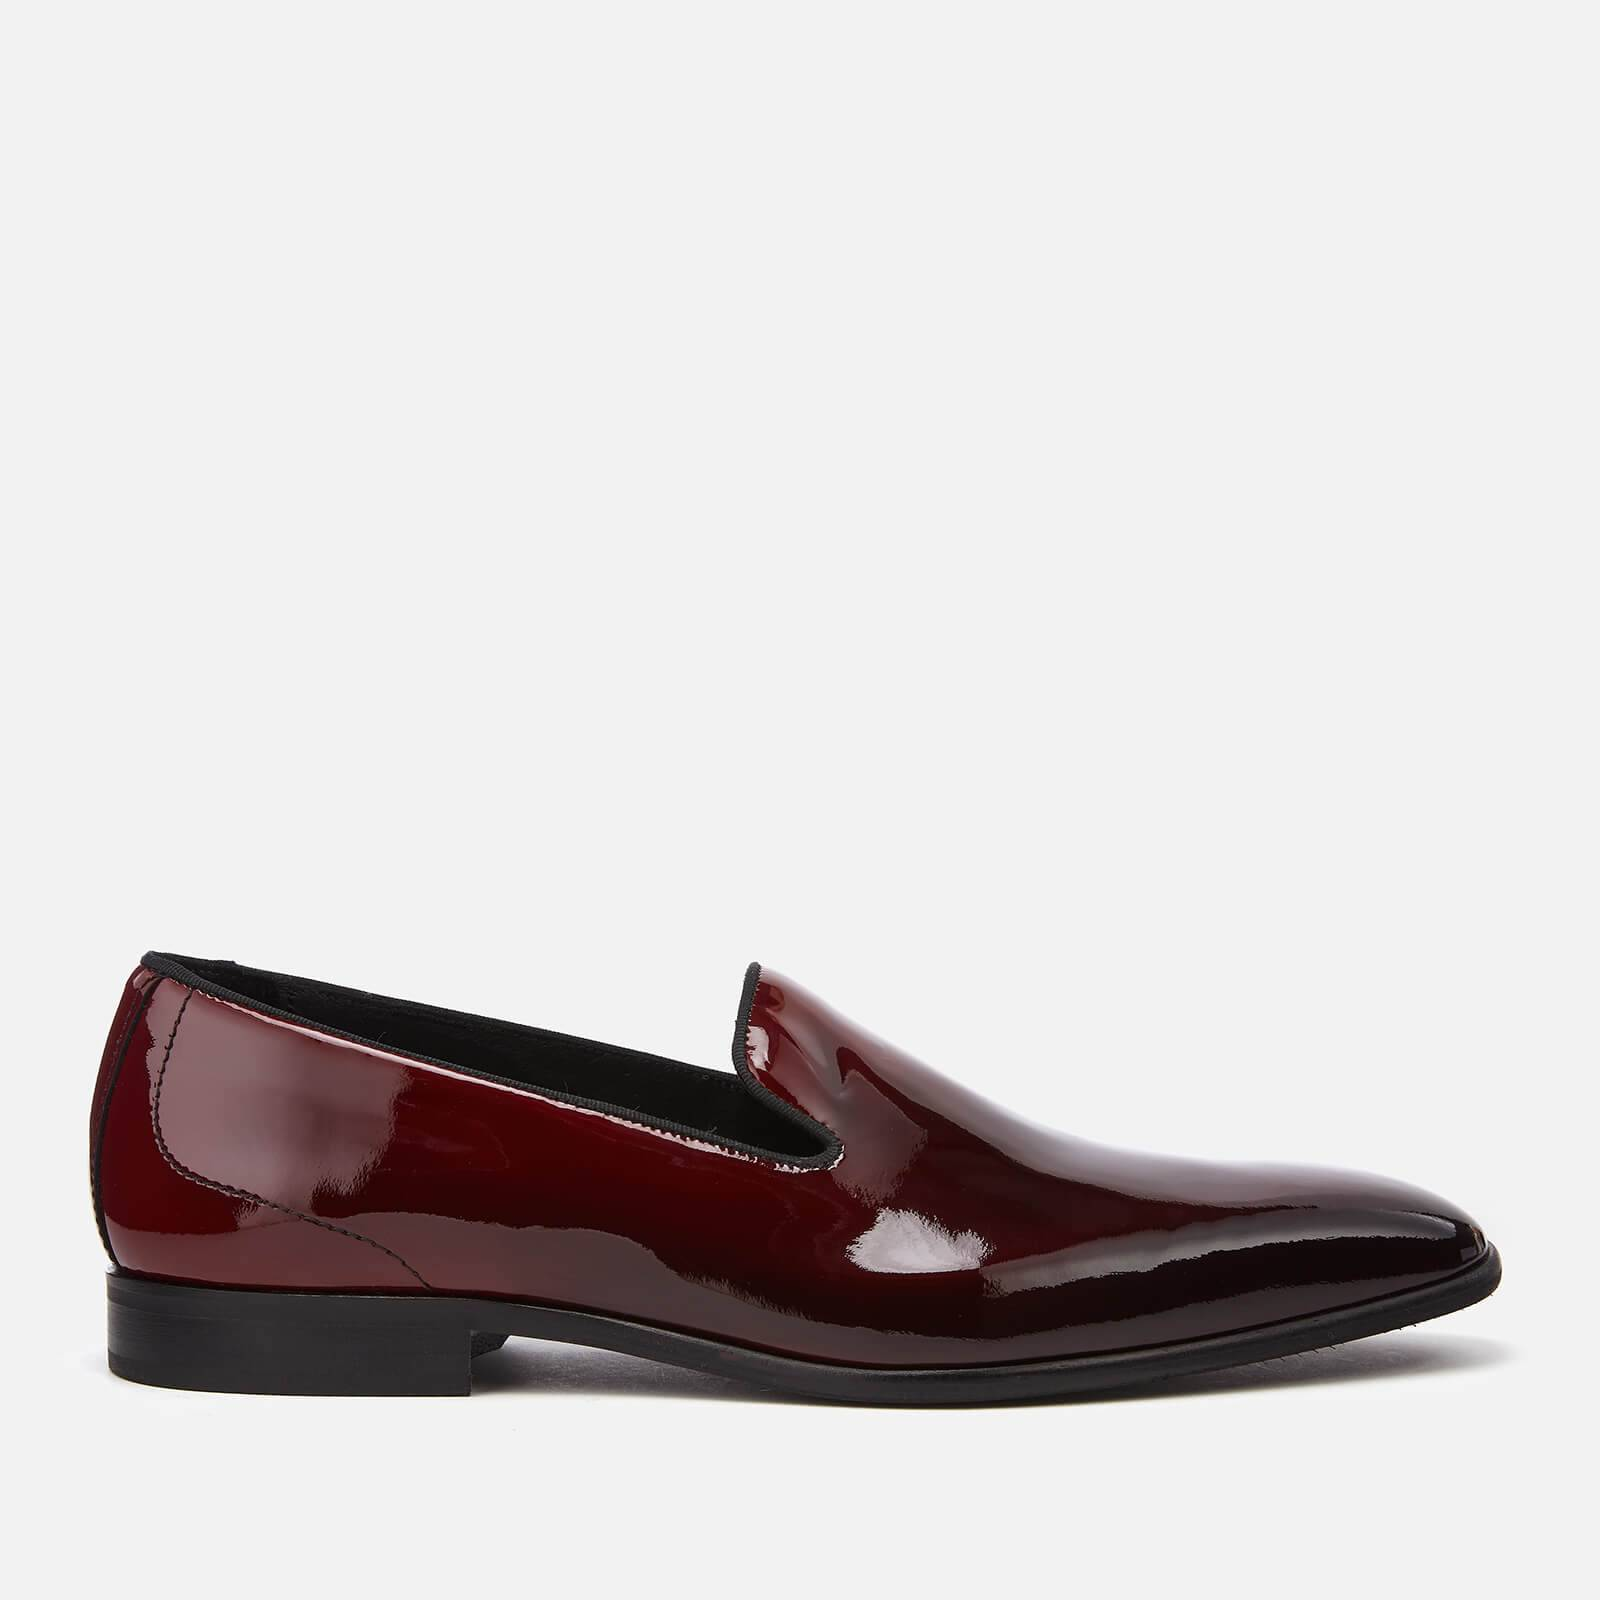 Kurt Geiger London Men's Radleigh Leather Loafers - Black/Red - UK 9 - Black/Red